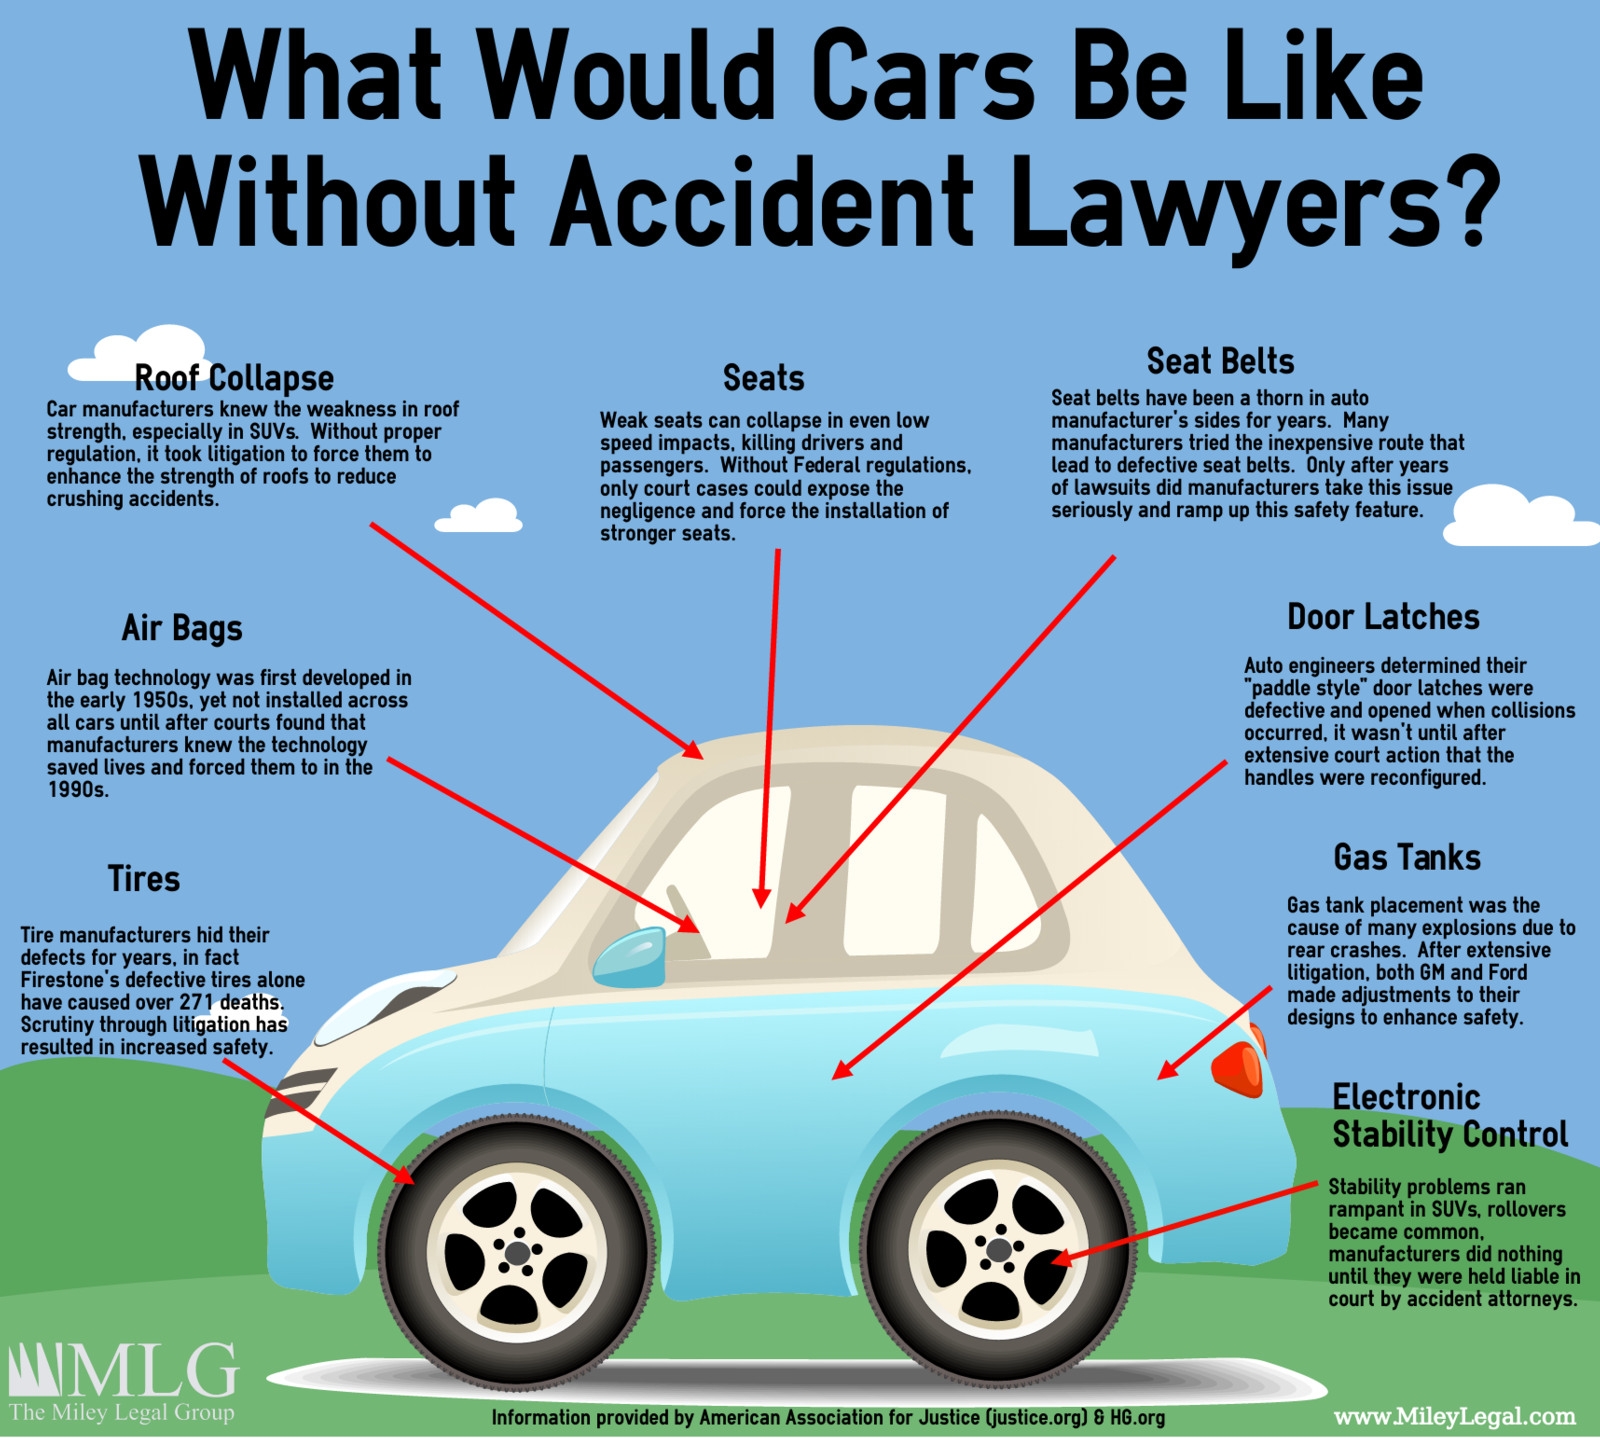 What would cars be like without accident lawyers